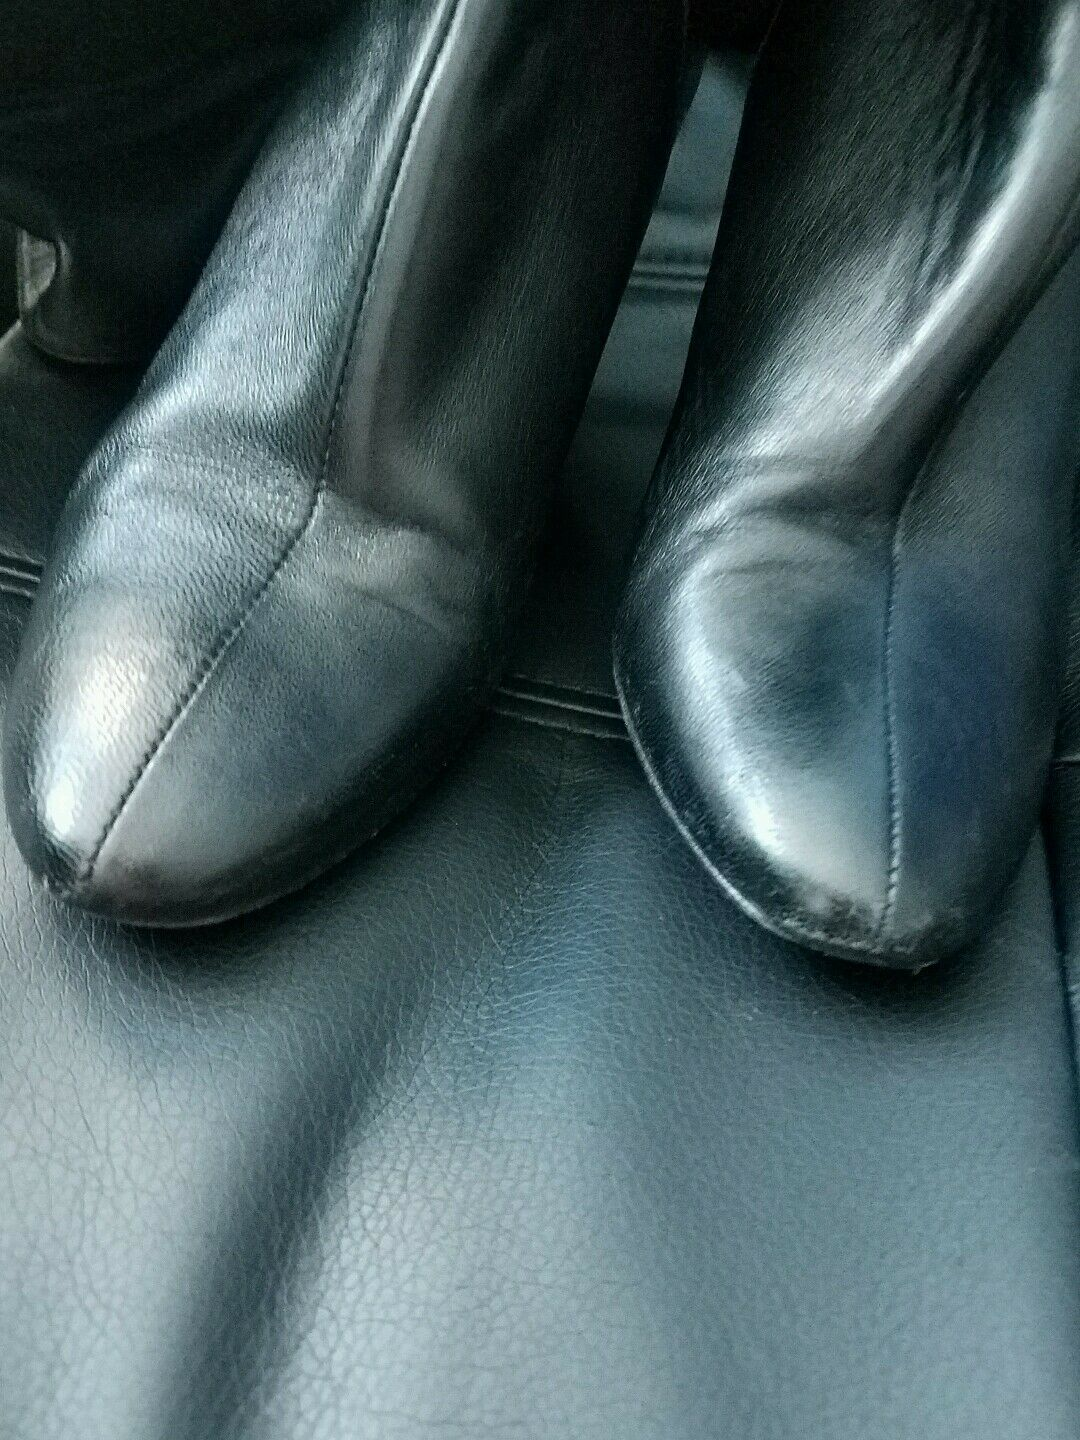 Saks fifth avenue leather boots wedge 6.5           270 5974fb